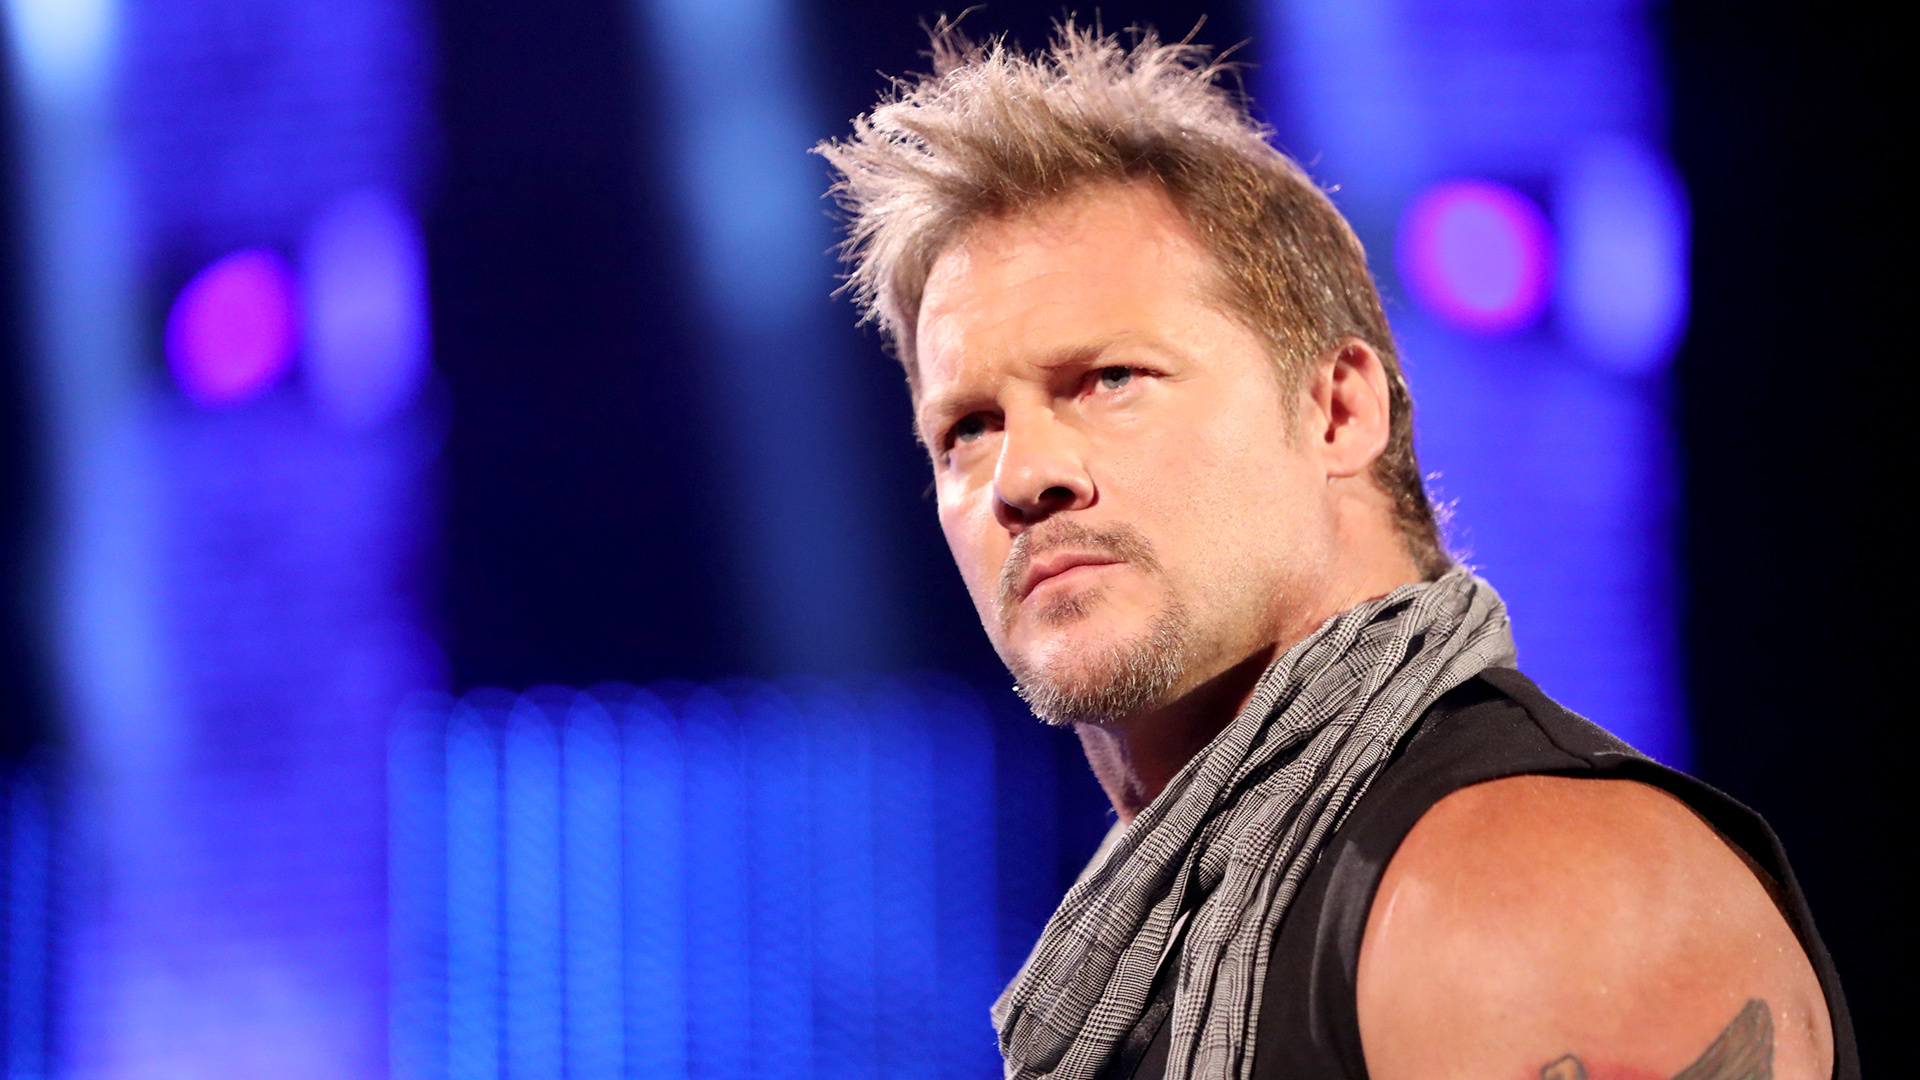 Chris Jericho Hd Wallpaper